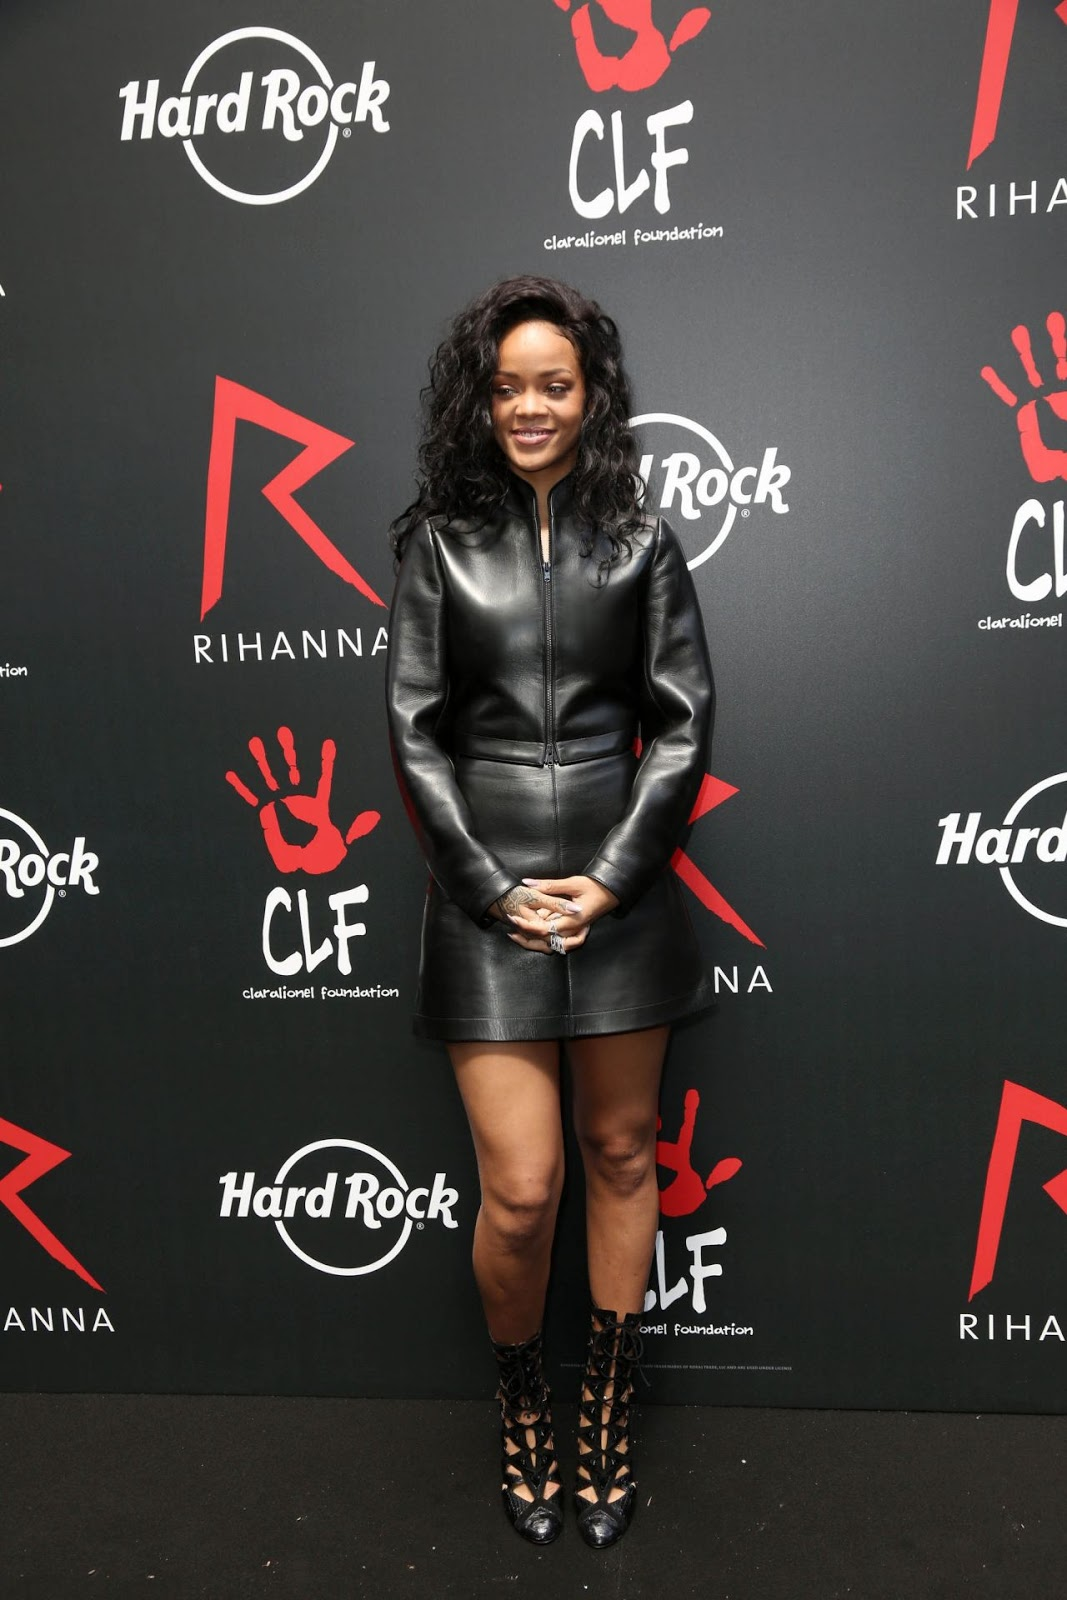 Rihanna flaunts a leather look at 'The Clara Lionel Foundation' T-Shirt Launch in Paris